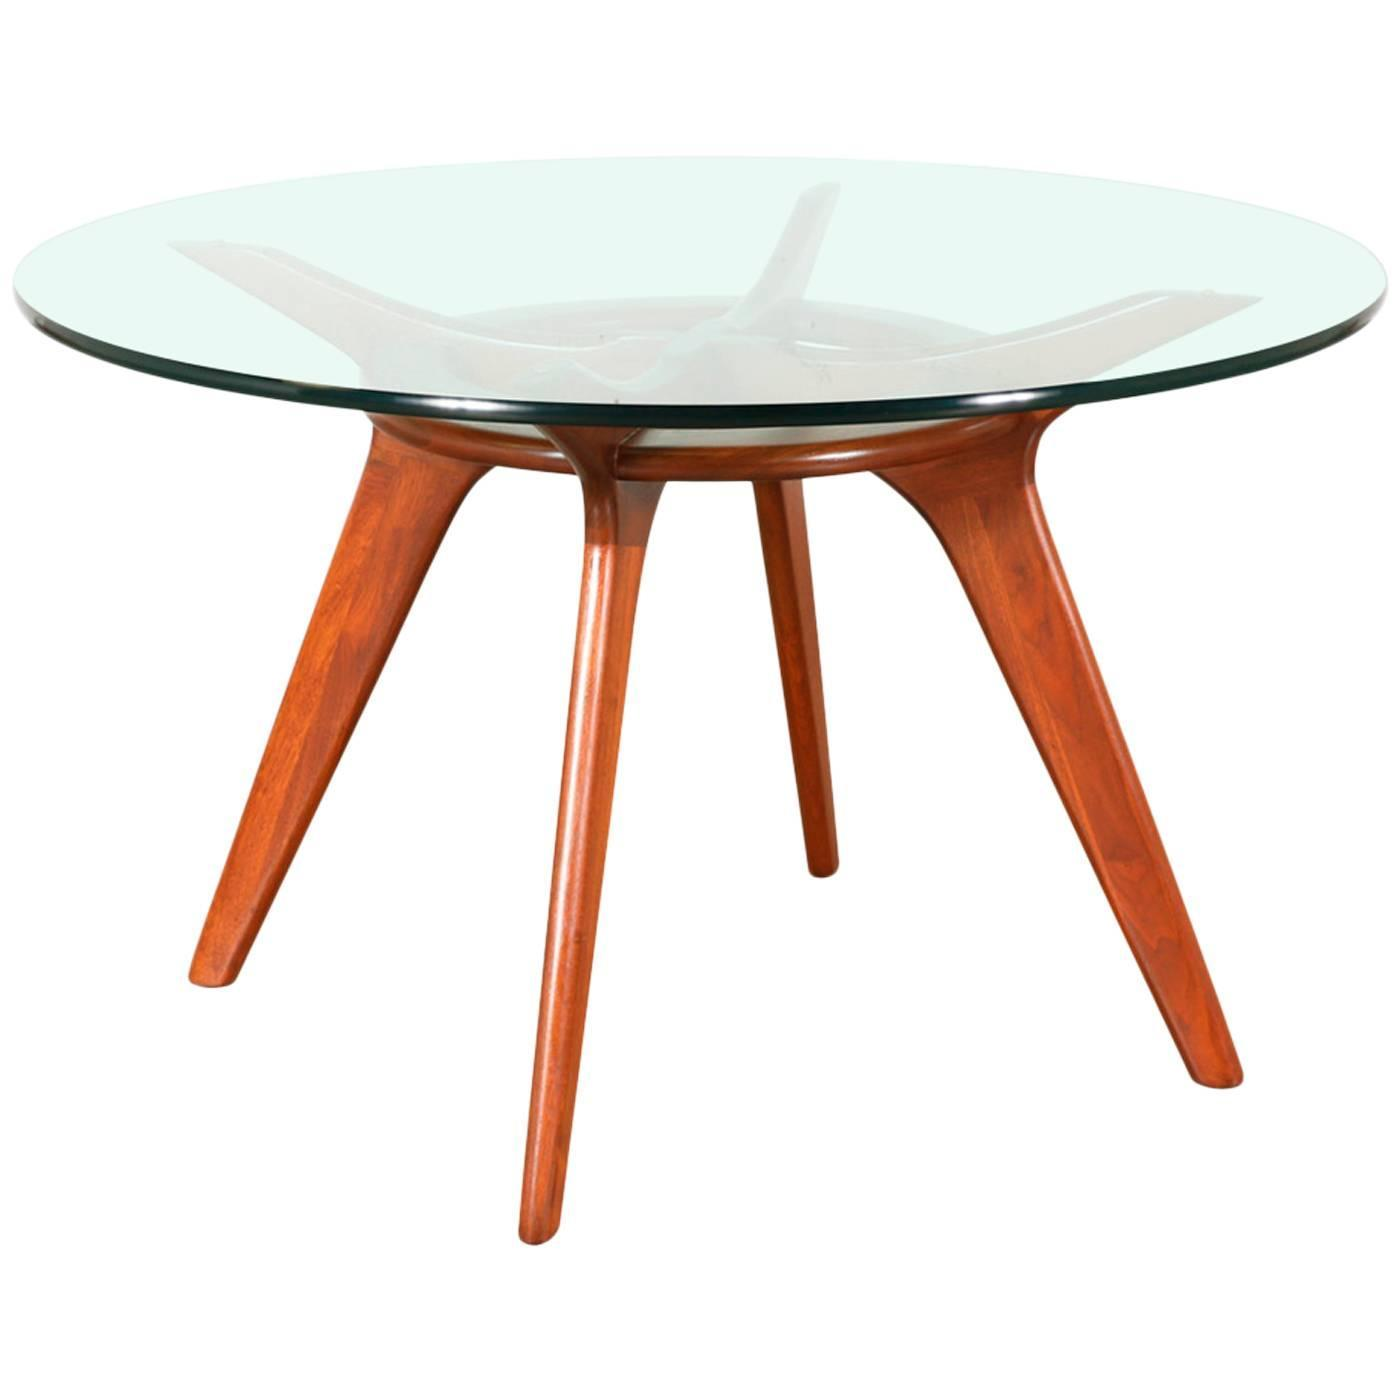 Remarkable Round Dining Table Glass Top Pics Designs Dievoon